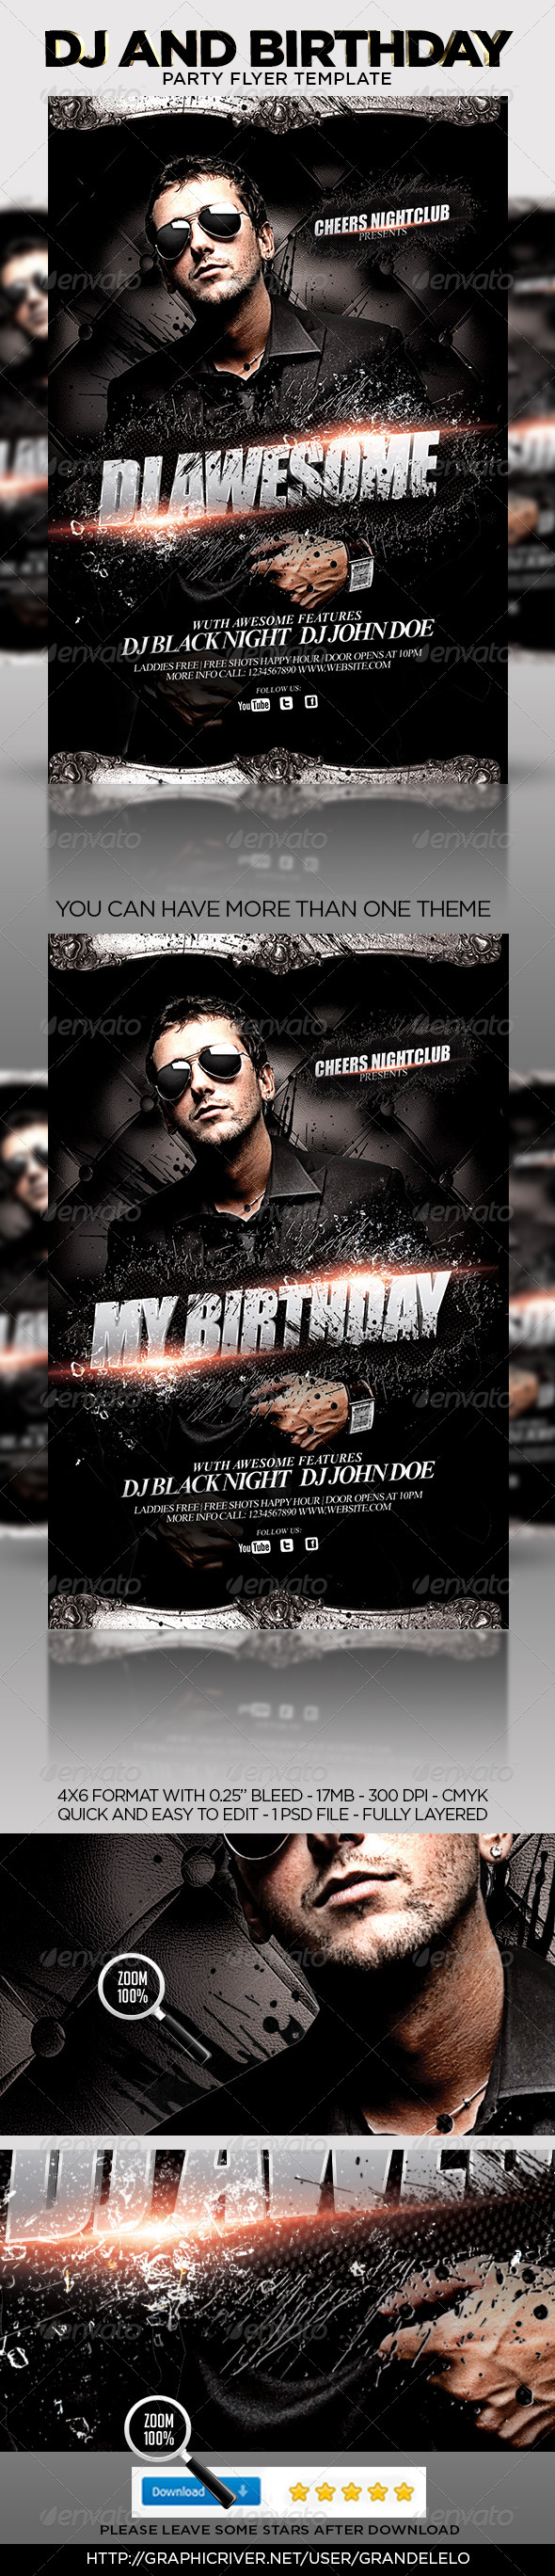 DJ or Birthday Party Flyer Template - Clubs & Parties Events